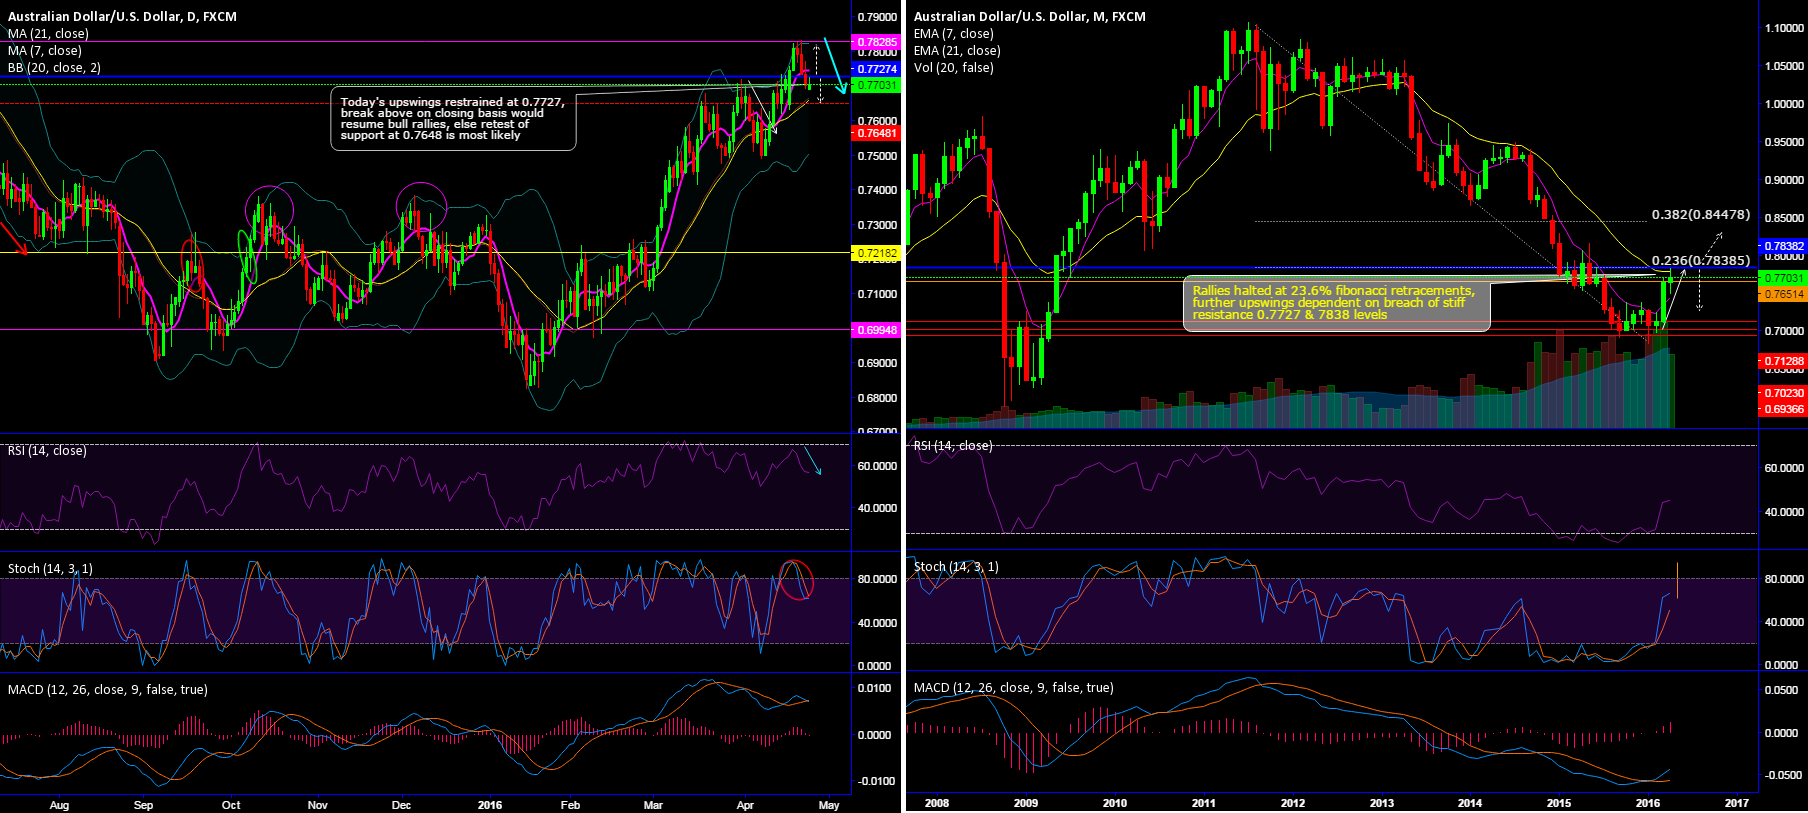 Don't miss AUD/USD shorts at stiff resistance at 0.7727 & 0.7838